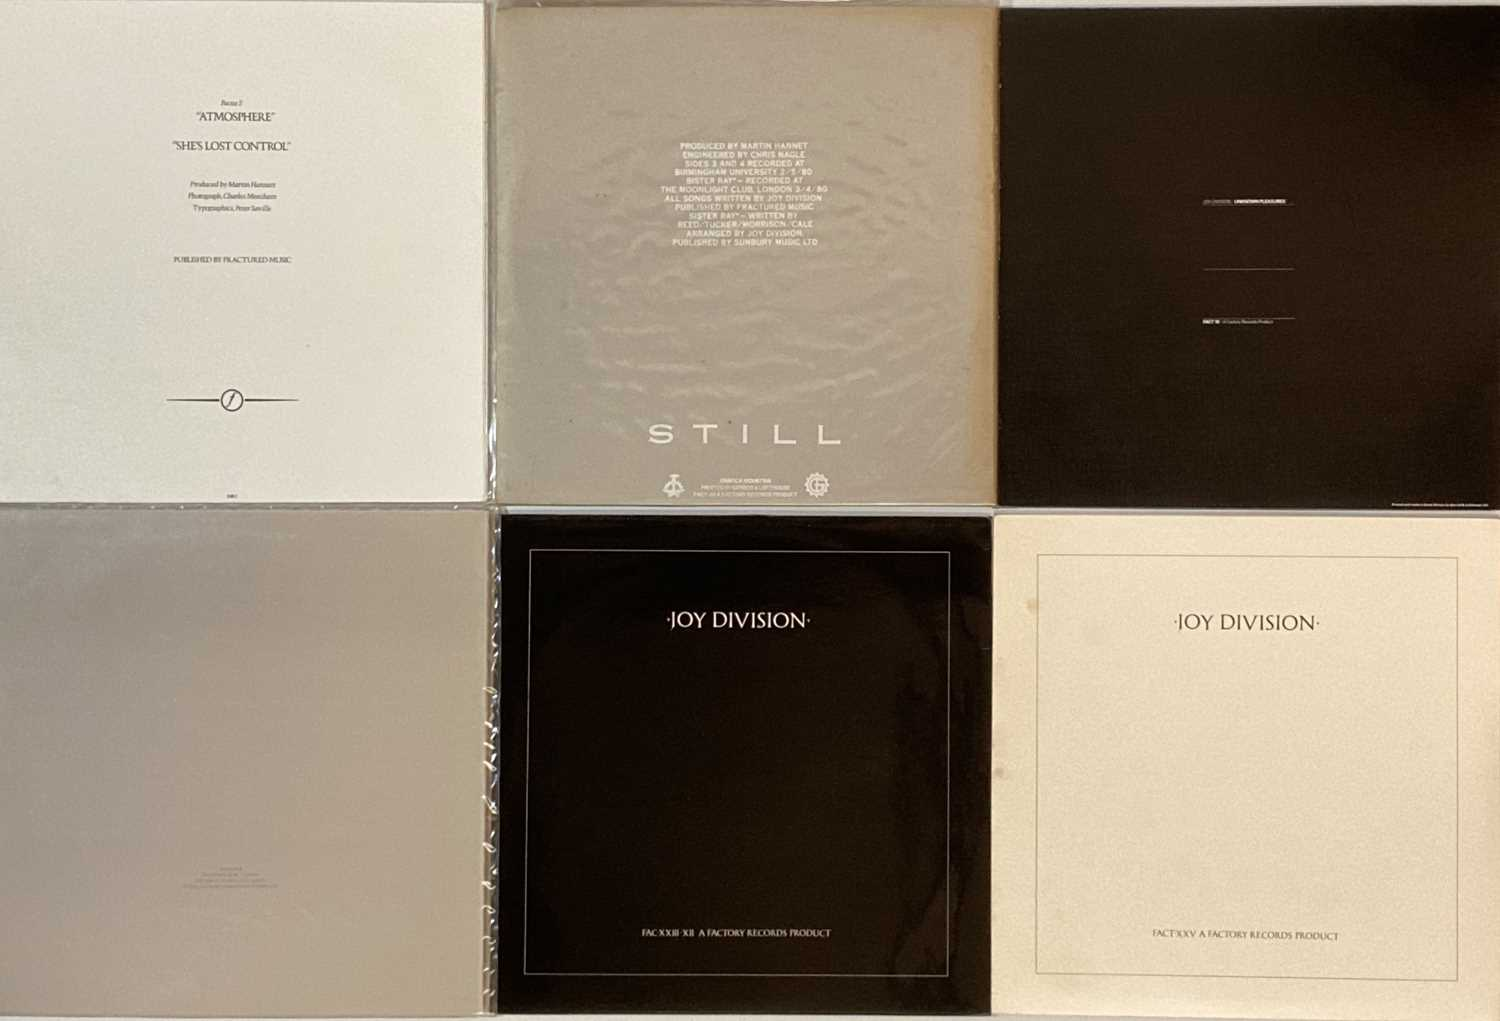 """JOY DIVISION/ NEW ORDER - LPs/ 12"""" - Image 2 of 2"""